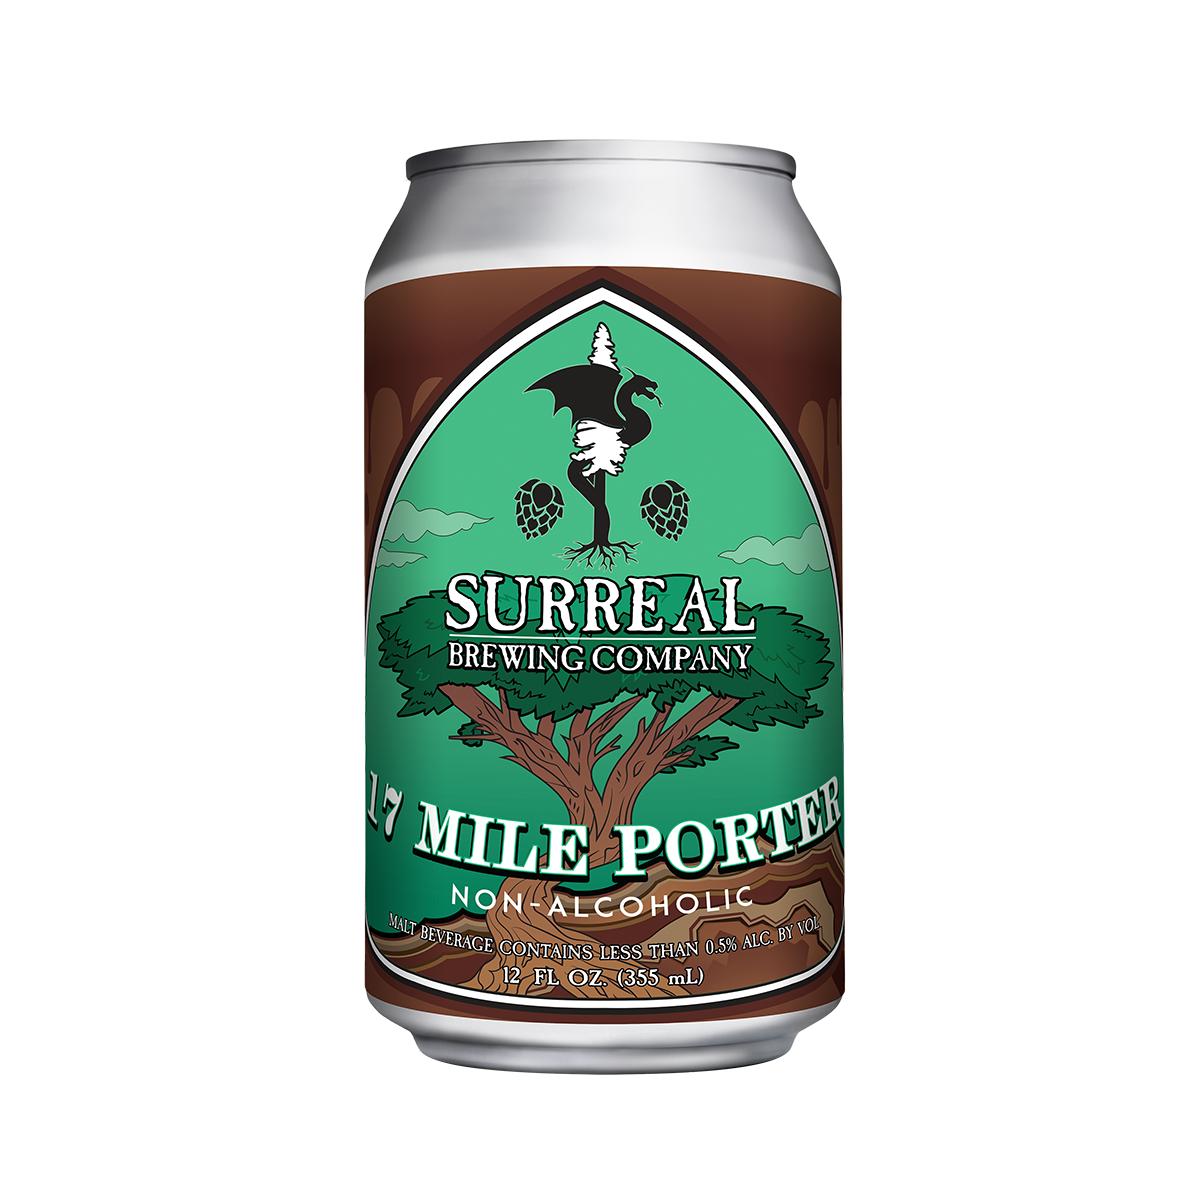 Surreal Brewing 17MilePorter Can